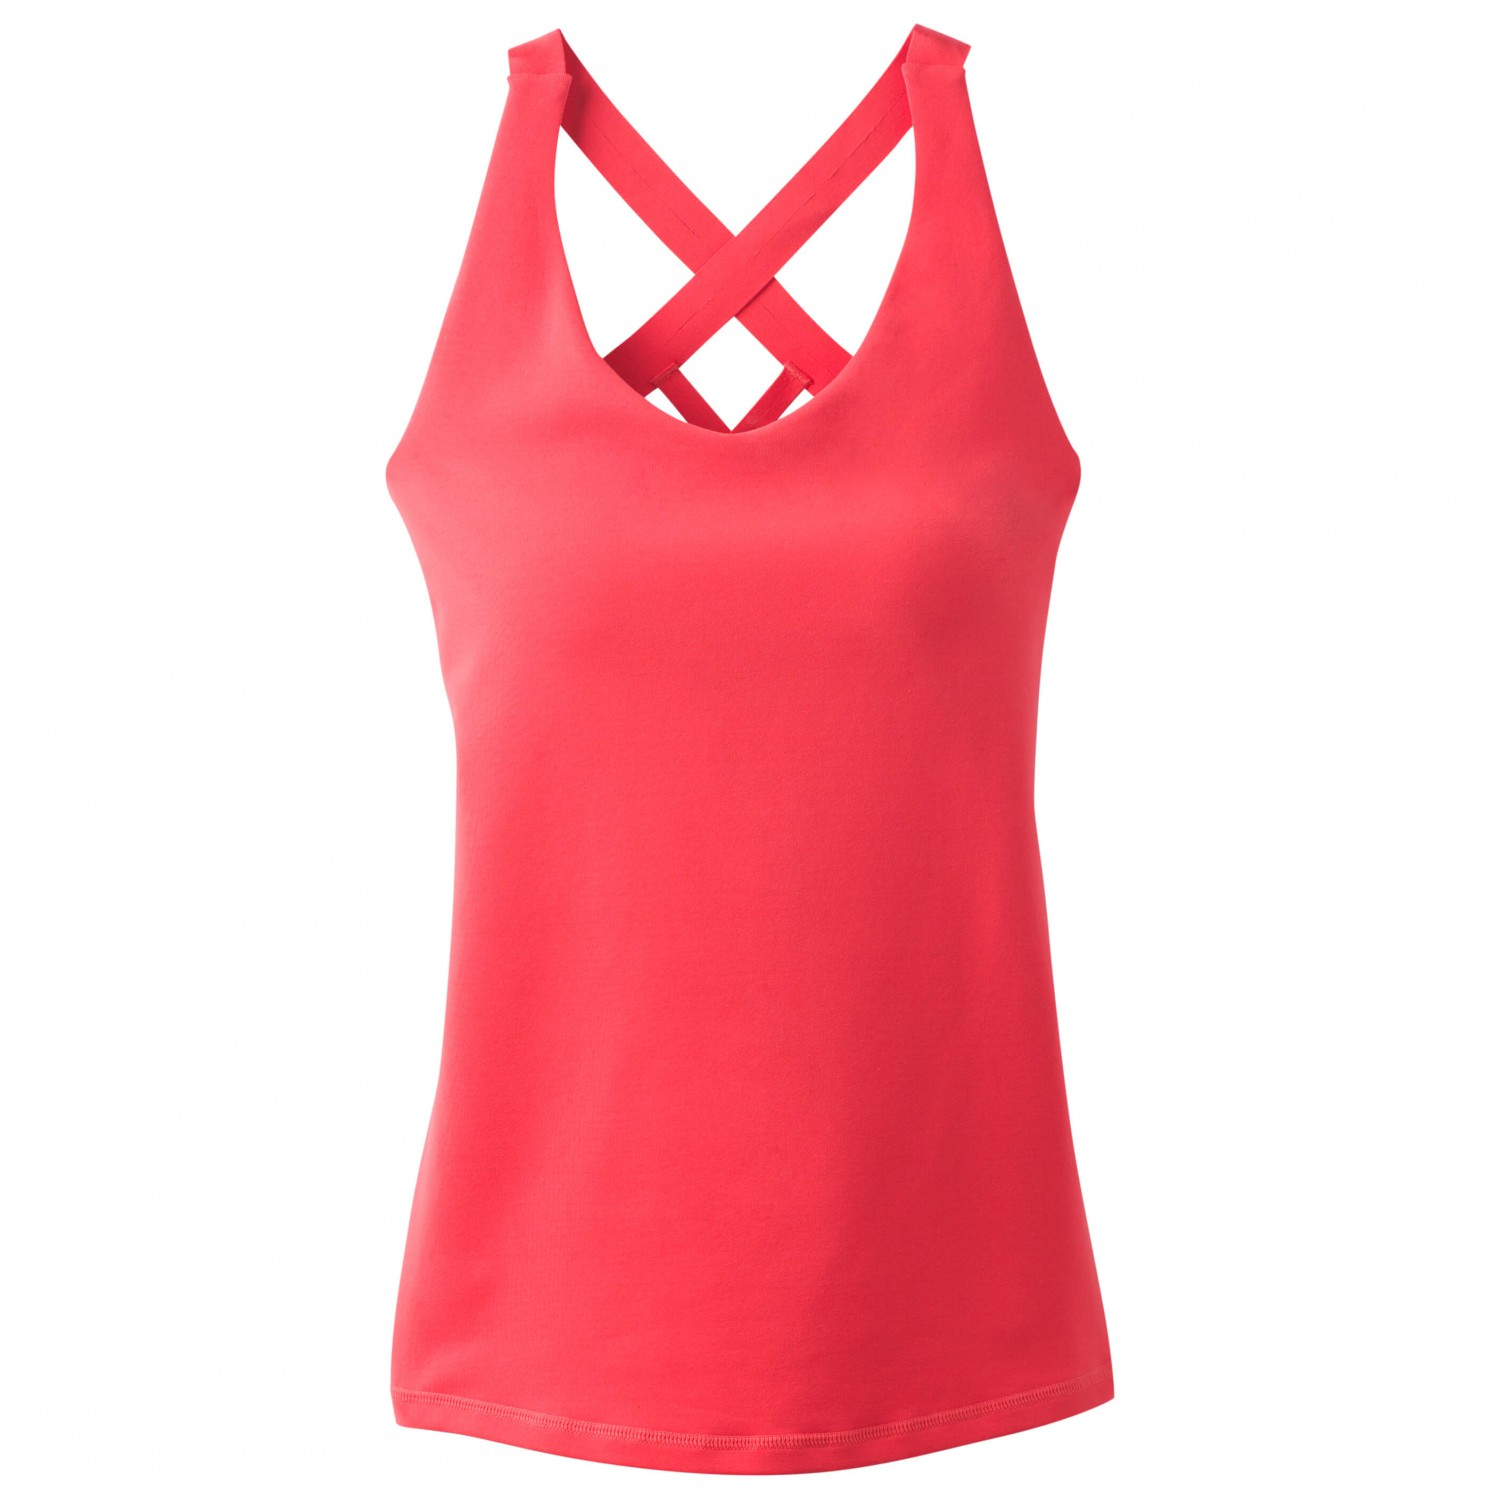 Prana Verana Top - Yoga Tops Women's